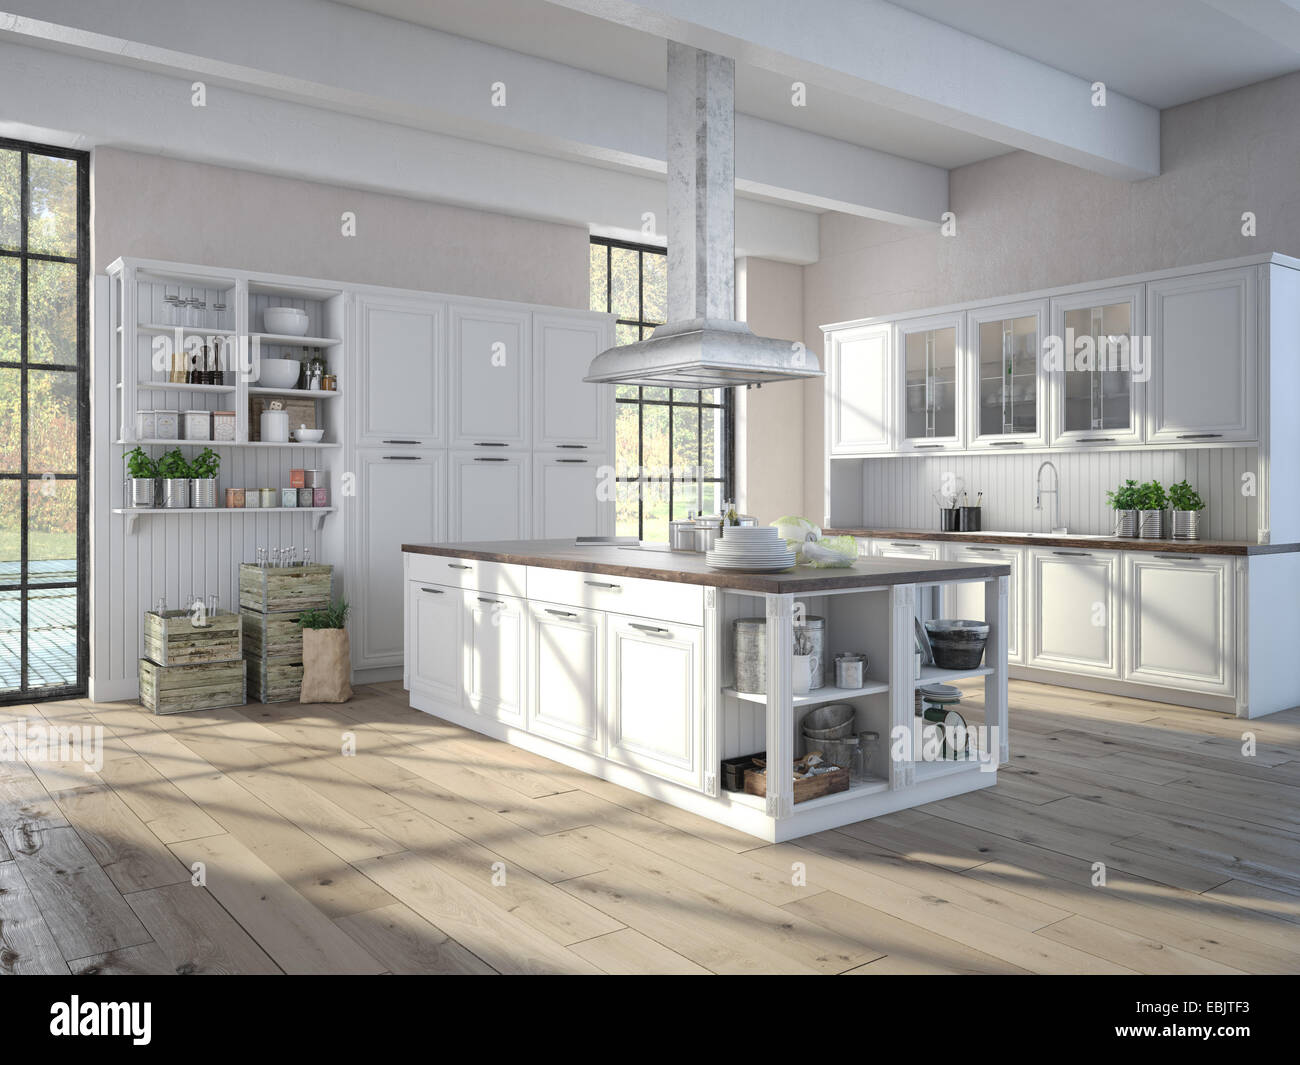 Kitchen Taps Jtf Luxurious Kitchen With Stainless Steel Appliances 3d Rendering